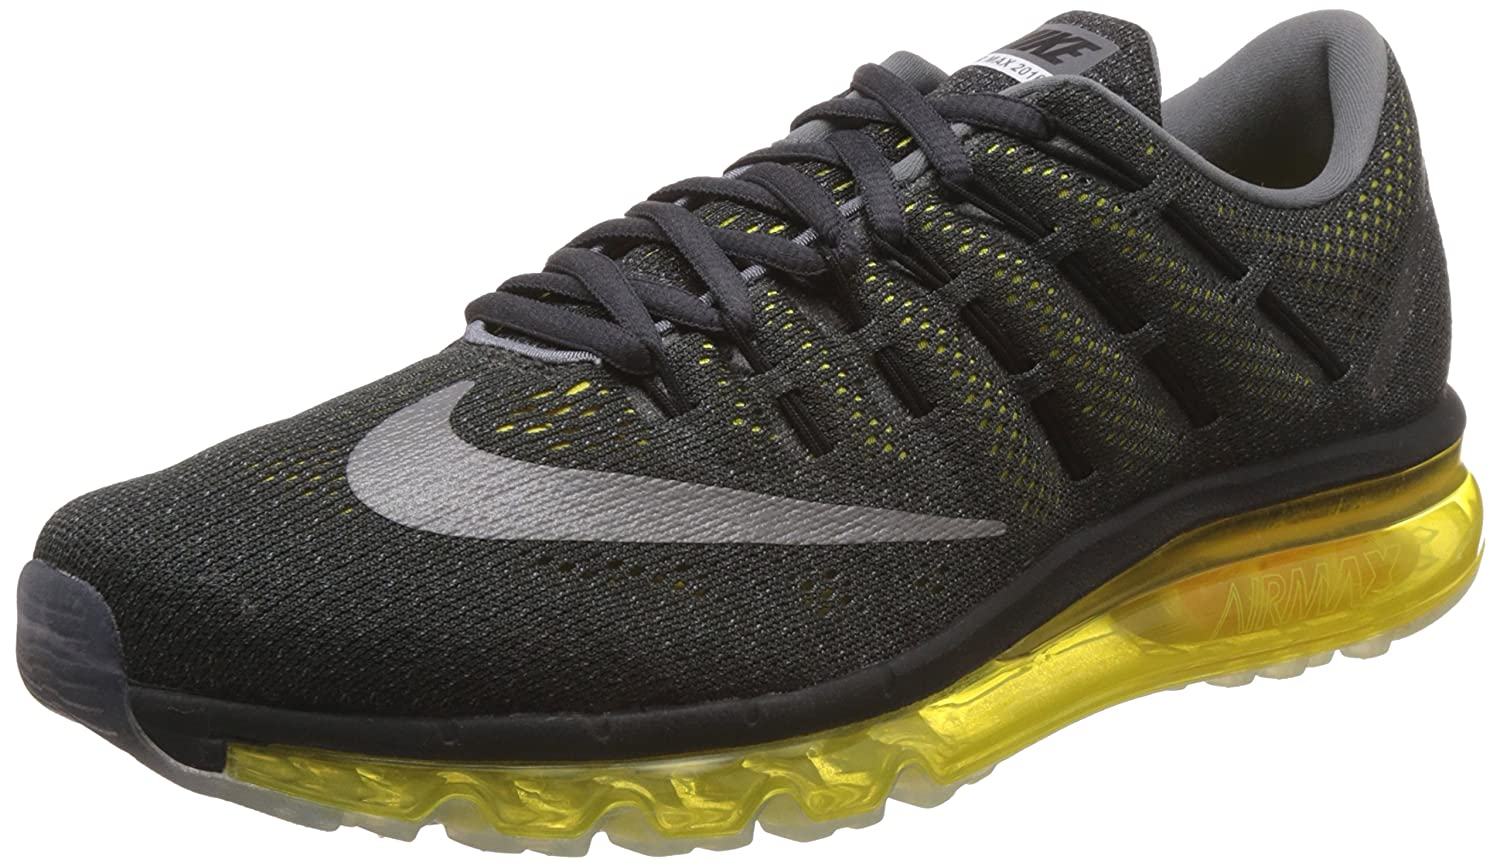 ead3aecb46 Nike Men's Air Max 2016 Anthracite, Reflect Silver and Optional Yellow Running  Shoes -7 UK/India (41 EU)(8 US): Buy Online at Low Prices in India -  Amazon. ...